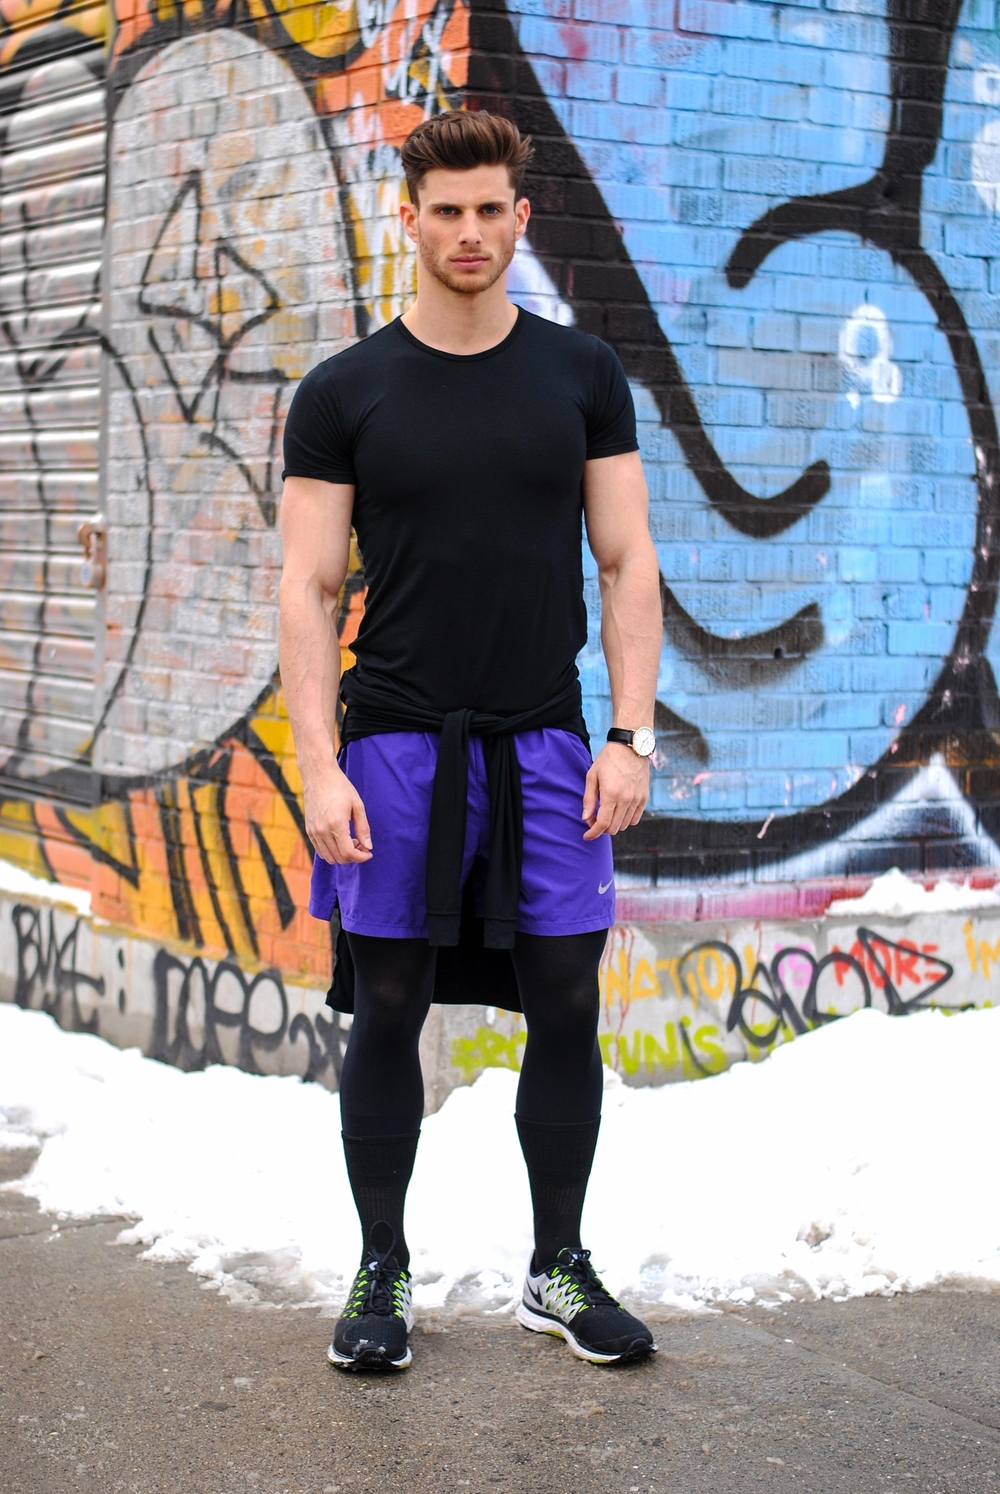 Uniqlo Heat Tech Black T-Shirt, Uniqlo Heat Tech Black Turtleneck, Uniqlo Heat Tech Leggings, Nike Purple Running Shorts, Daniel Wellington Watch, Black Socks from Kmart and Nike Vemero Shoes.